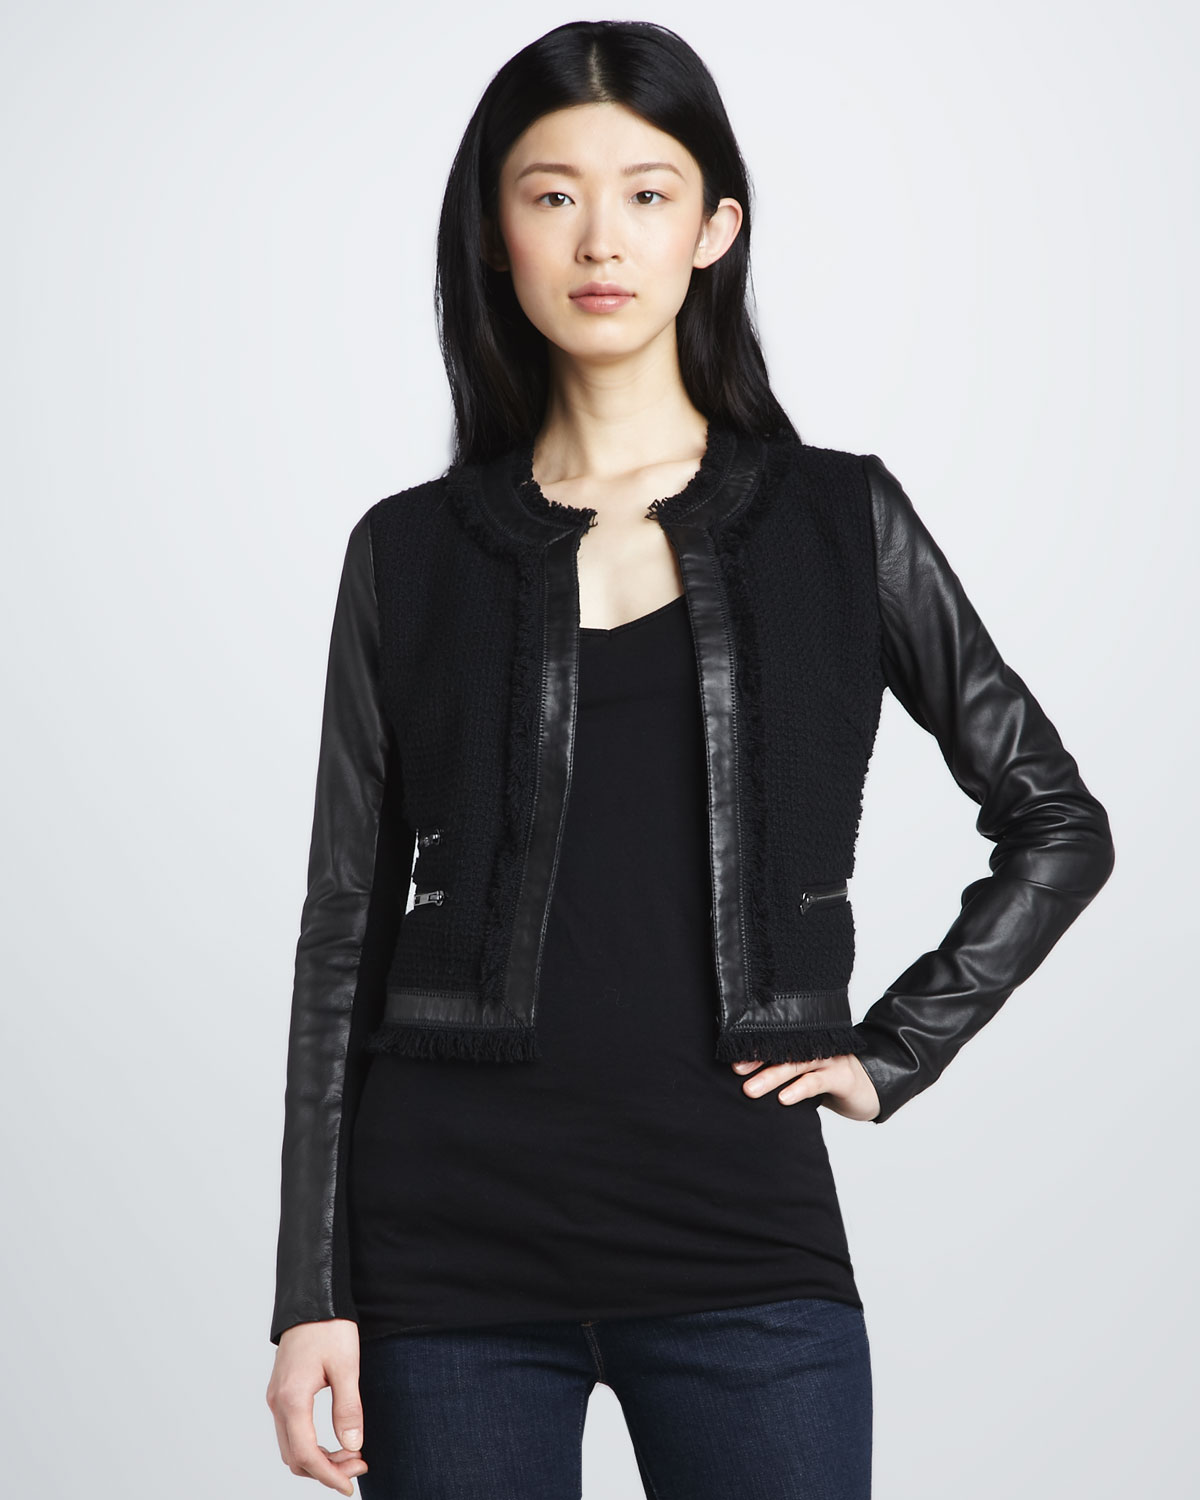 rebecca-taylor-black-tweed-jacket-product-1-4472617-838910314.jpeg